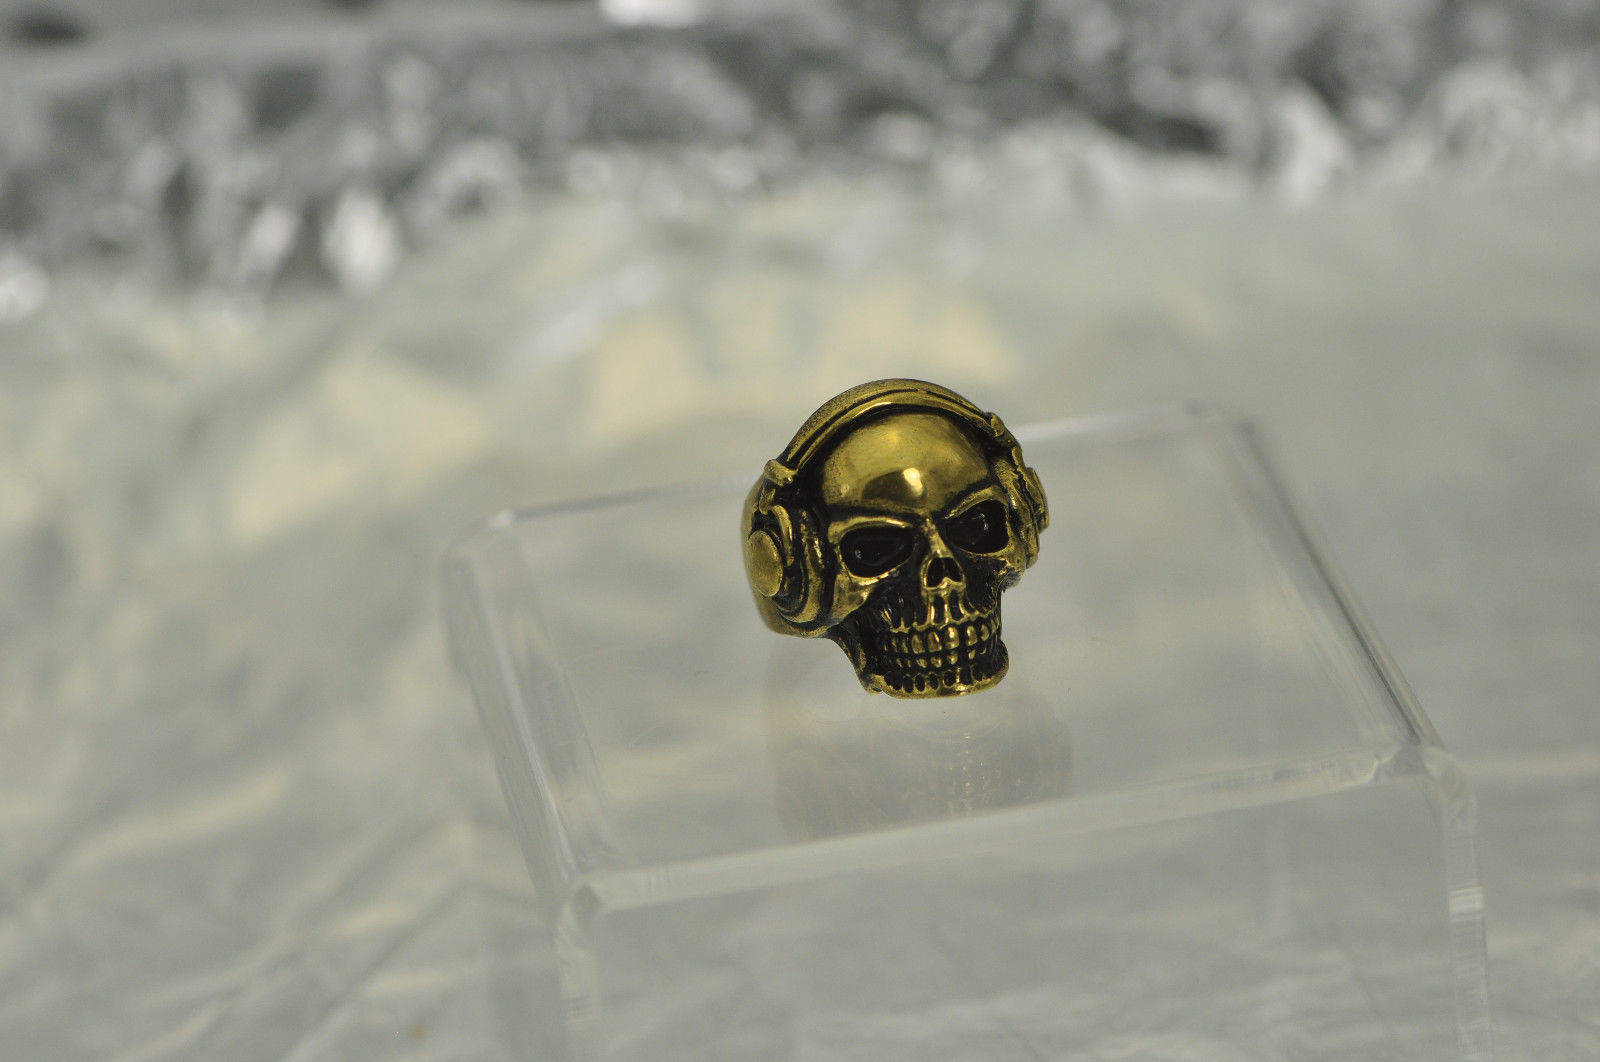 DJ Skull Ring Bass Beats Headphones 24K Gold Plated Black Effect Jewelry New